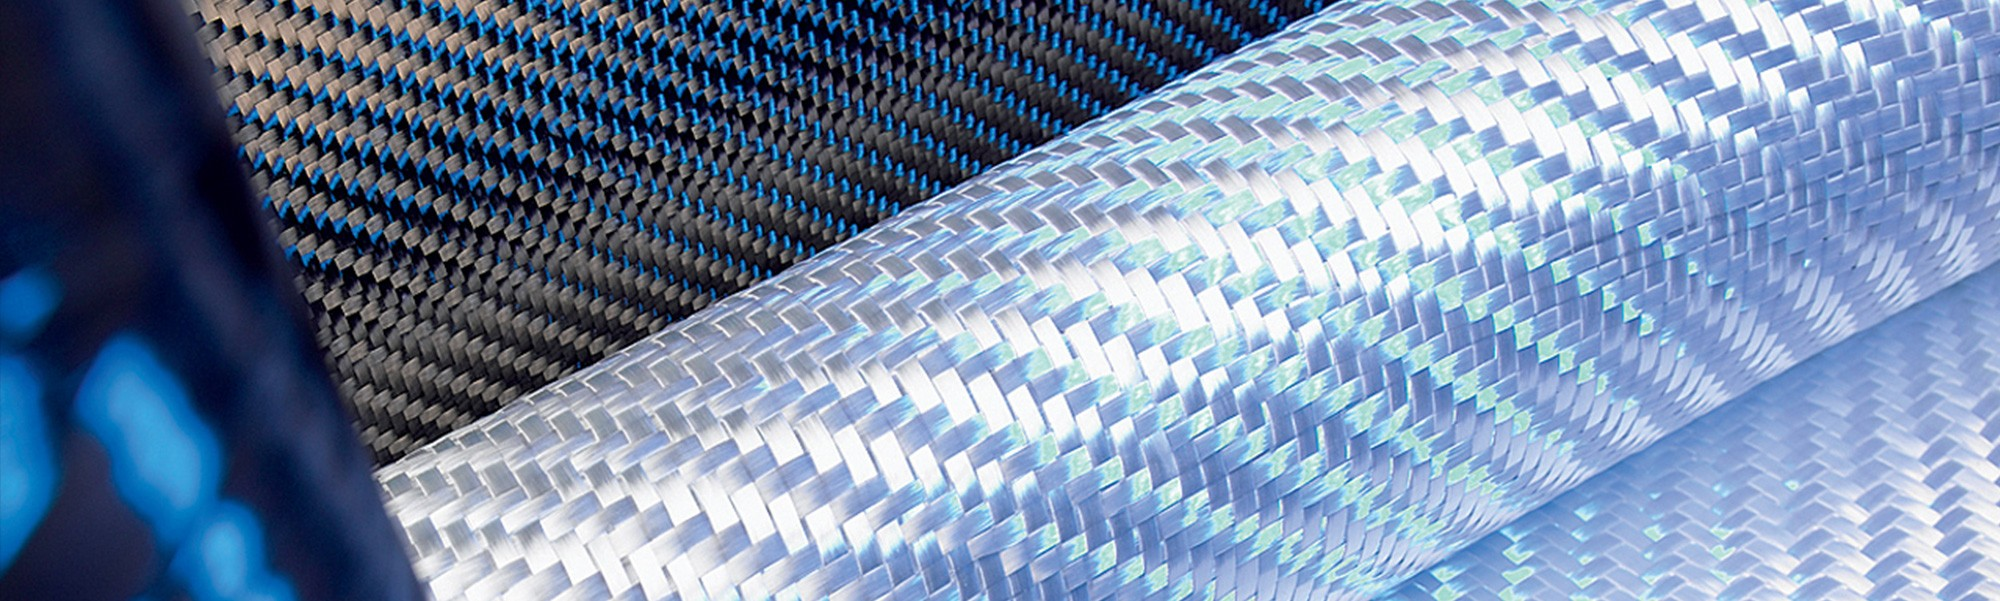 The Science And Technology Of Composite Materials Curious